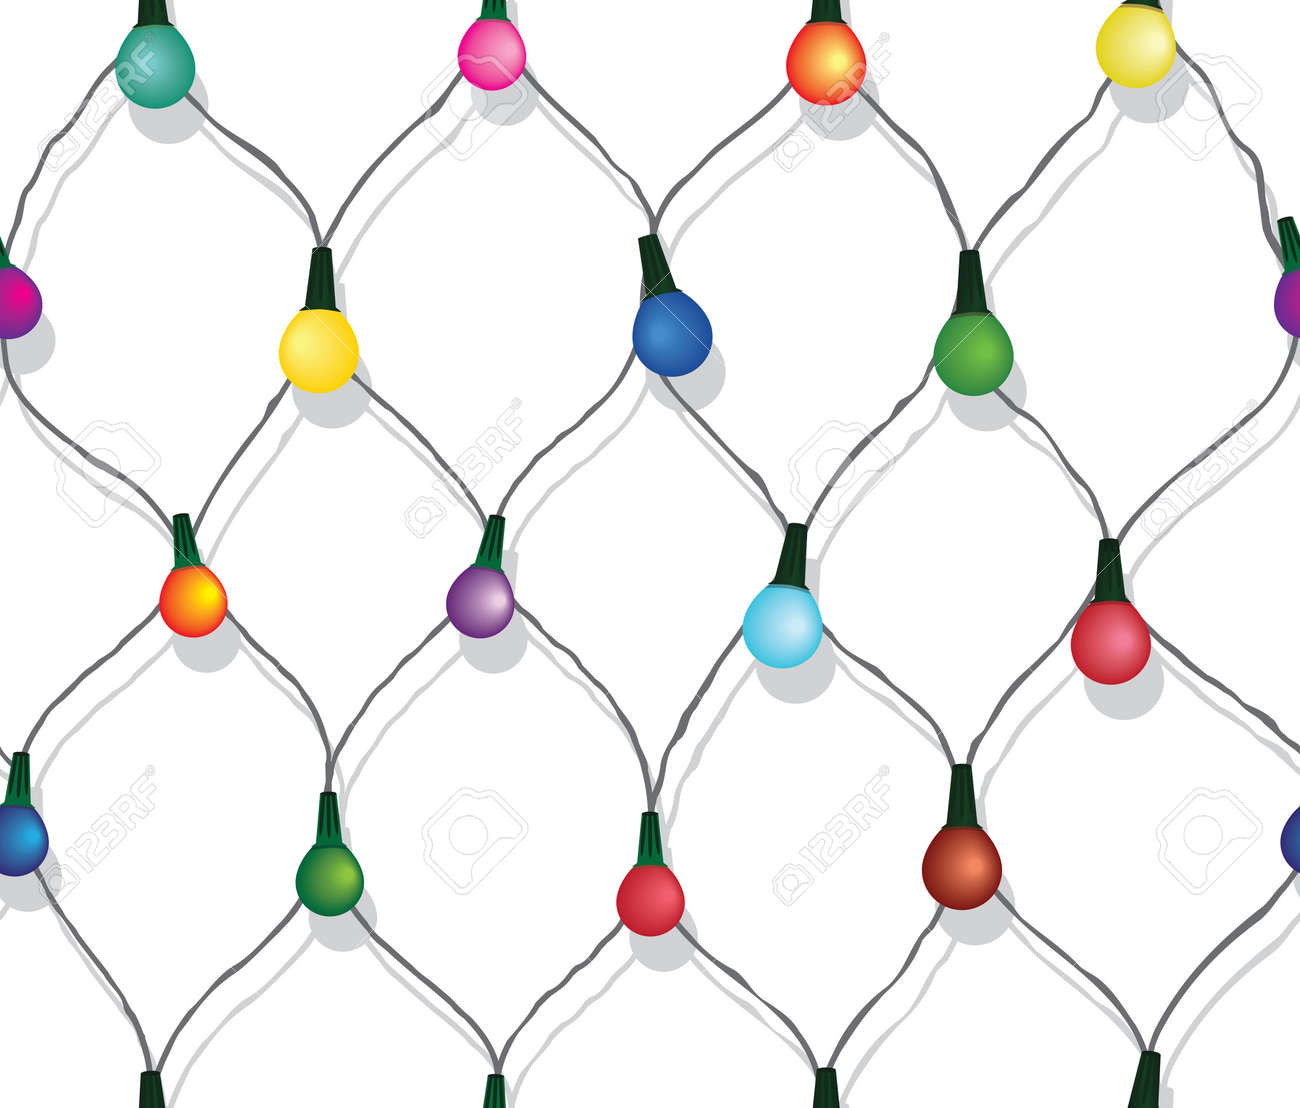 Seamless String Of Christmas Lights On Garland Vector Background Isolated White Stock